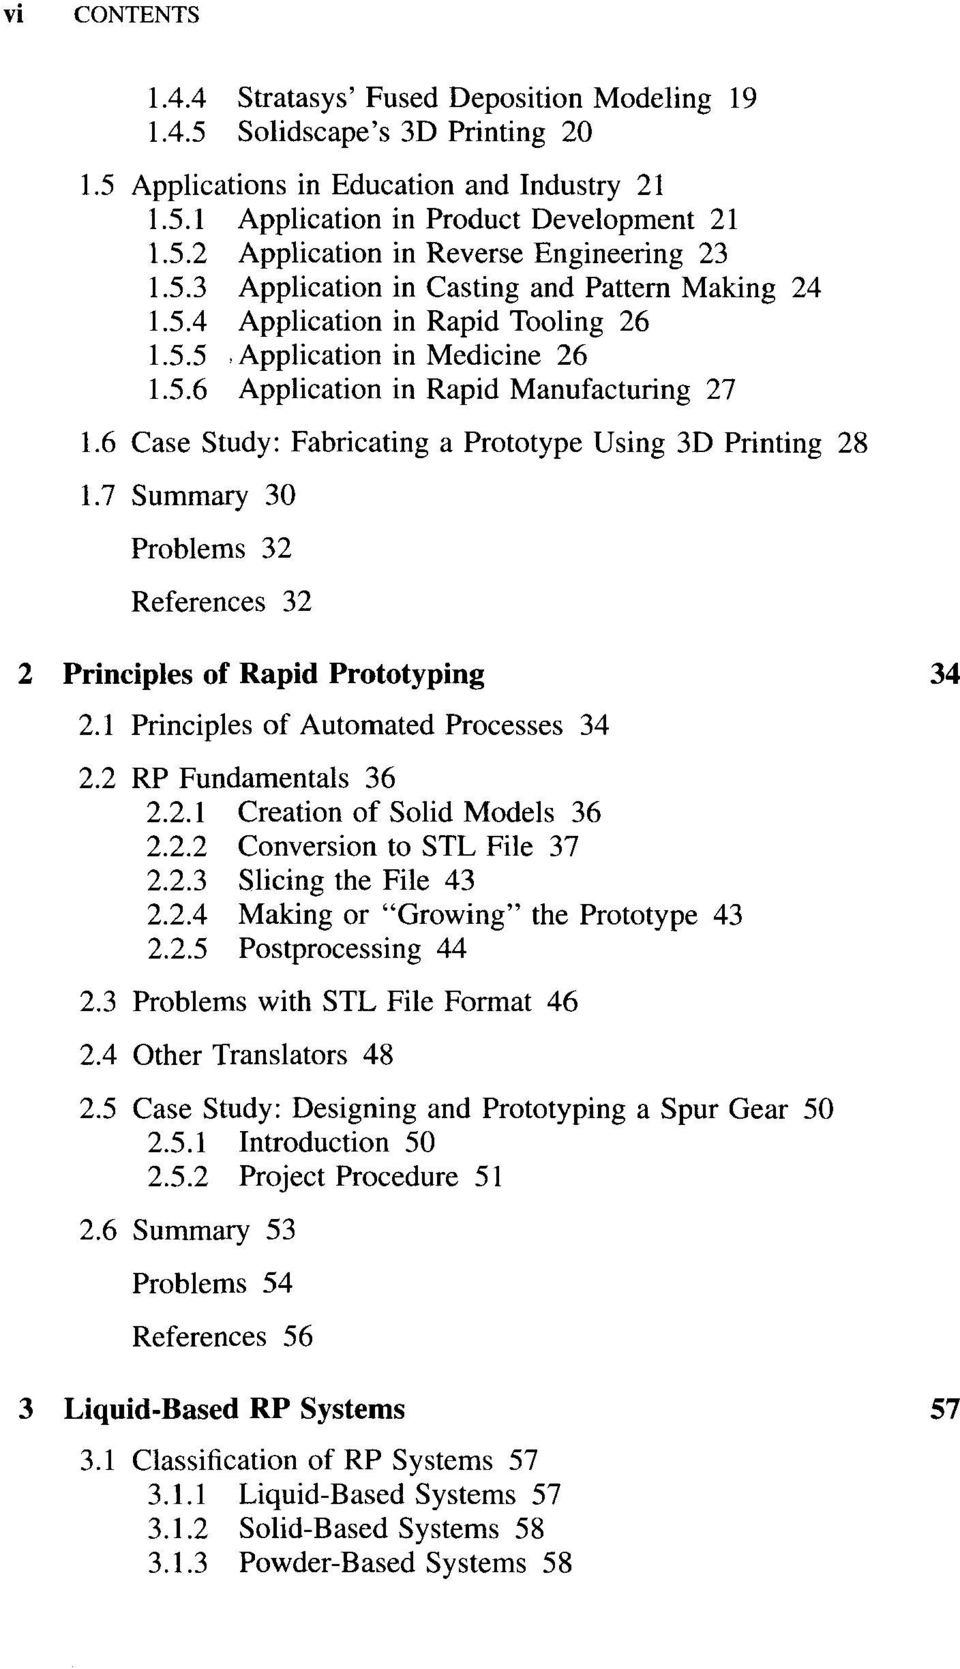 6 Case Study: Fabricating a Prototype Using 3D Printing 28 1.7 Summary 30 Problems 32 References 32 2 Principles of Rapid Prototyping 34 2.1 Principles of Automated Processes 34 2.